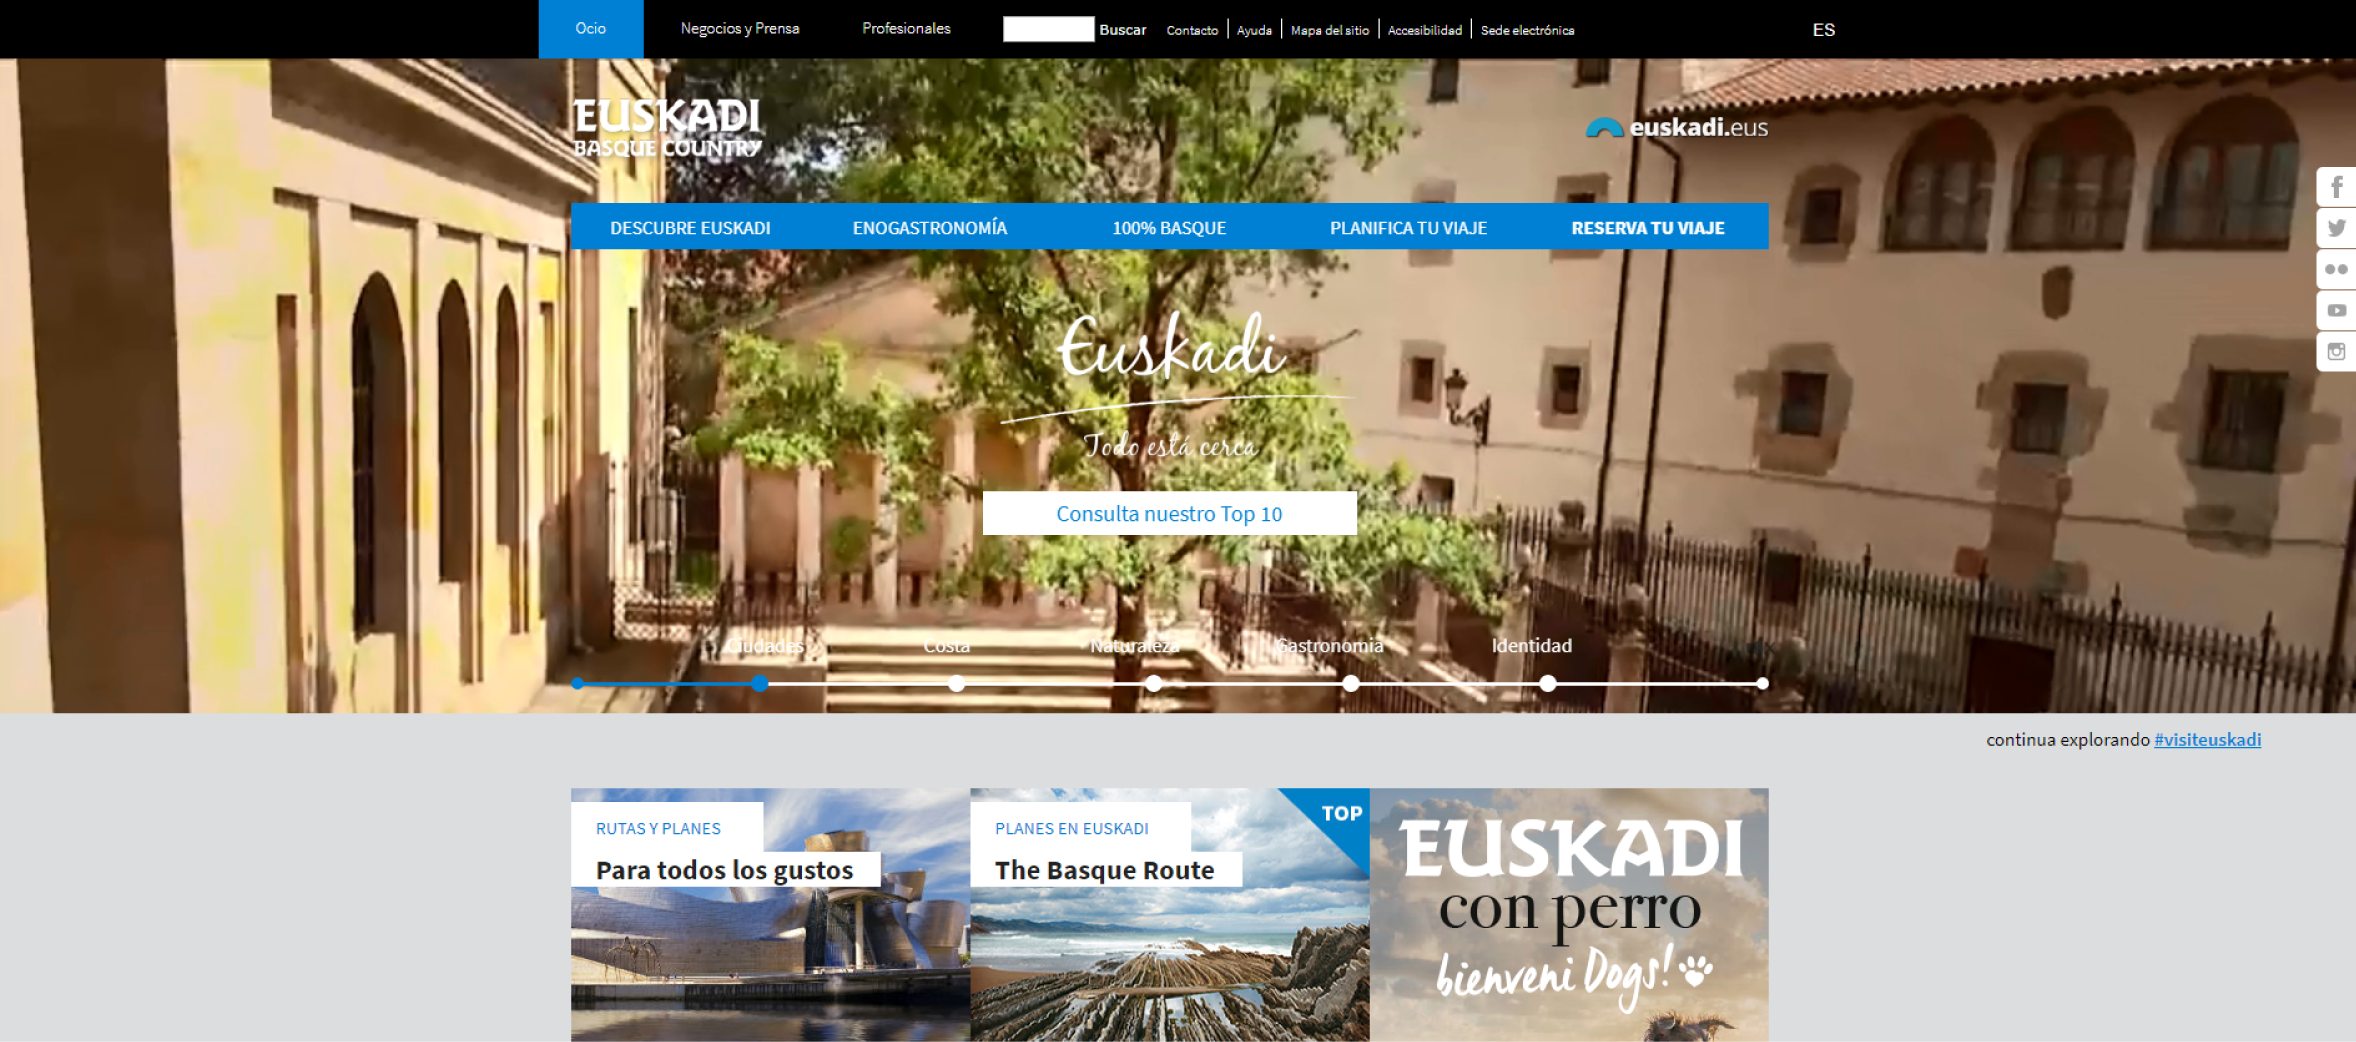 Euskadi Tourism - Basque Country Tourism